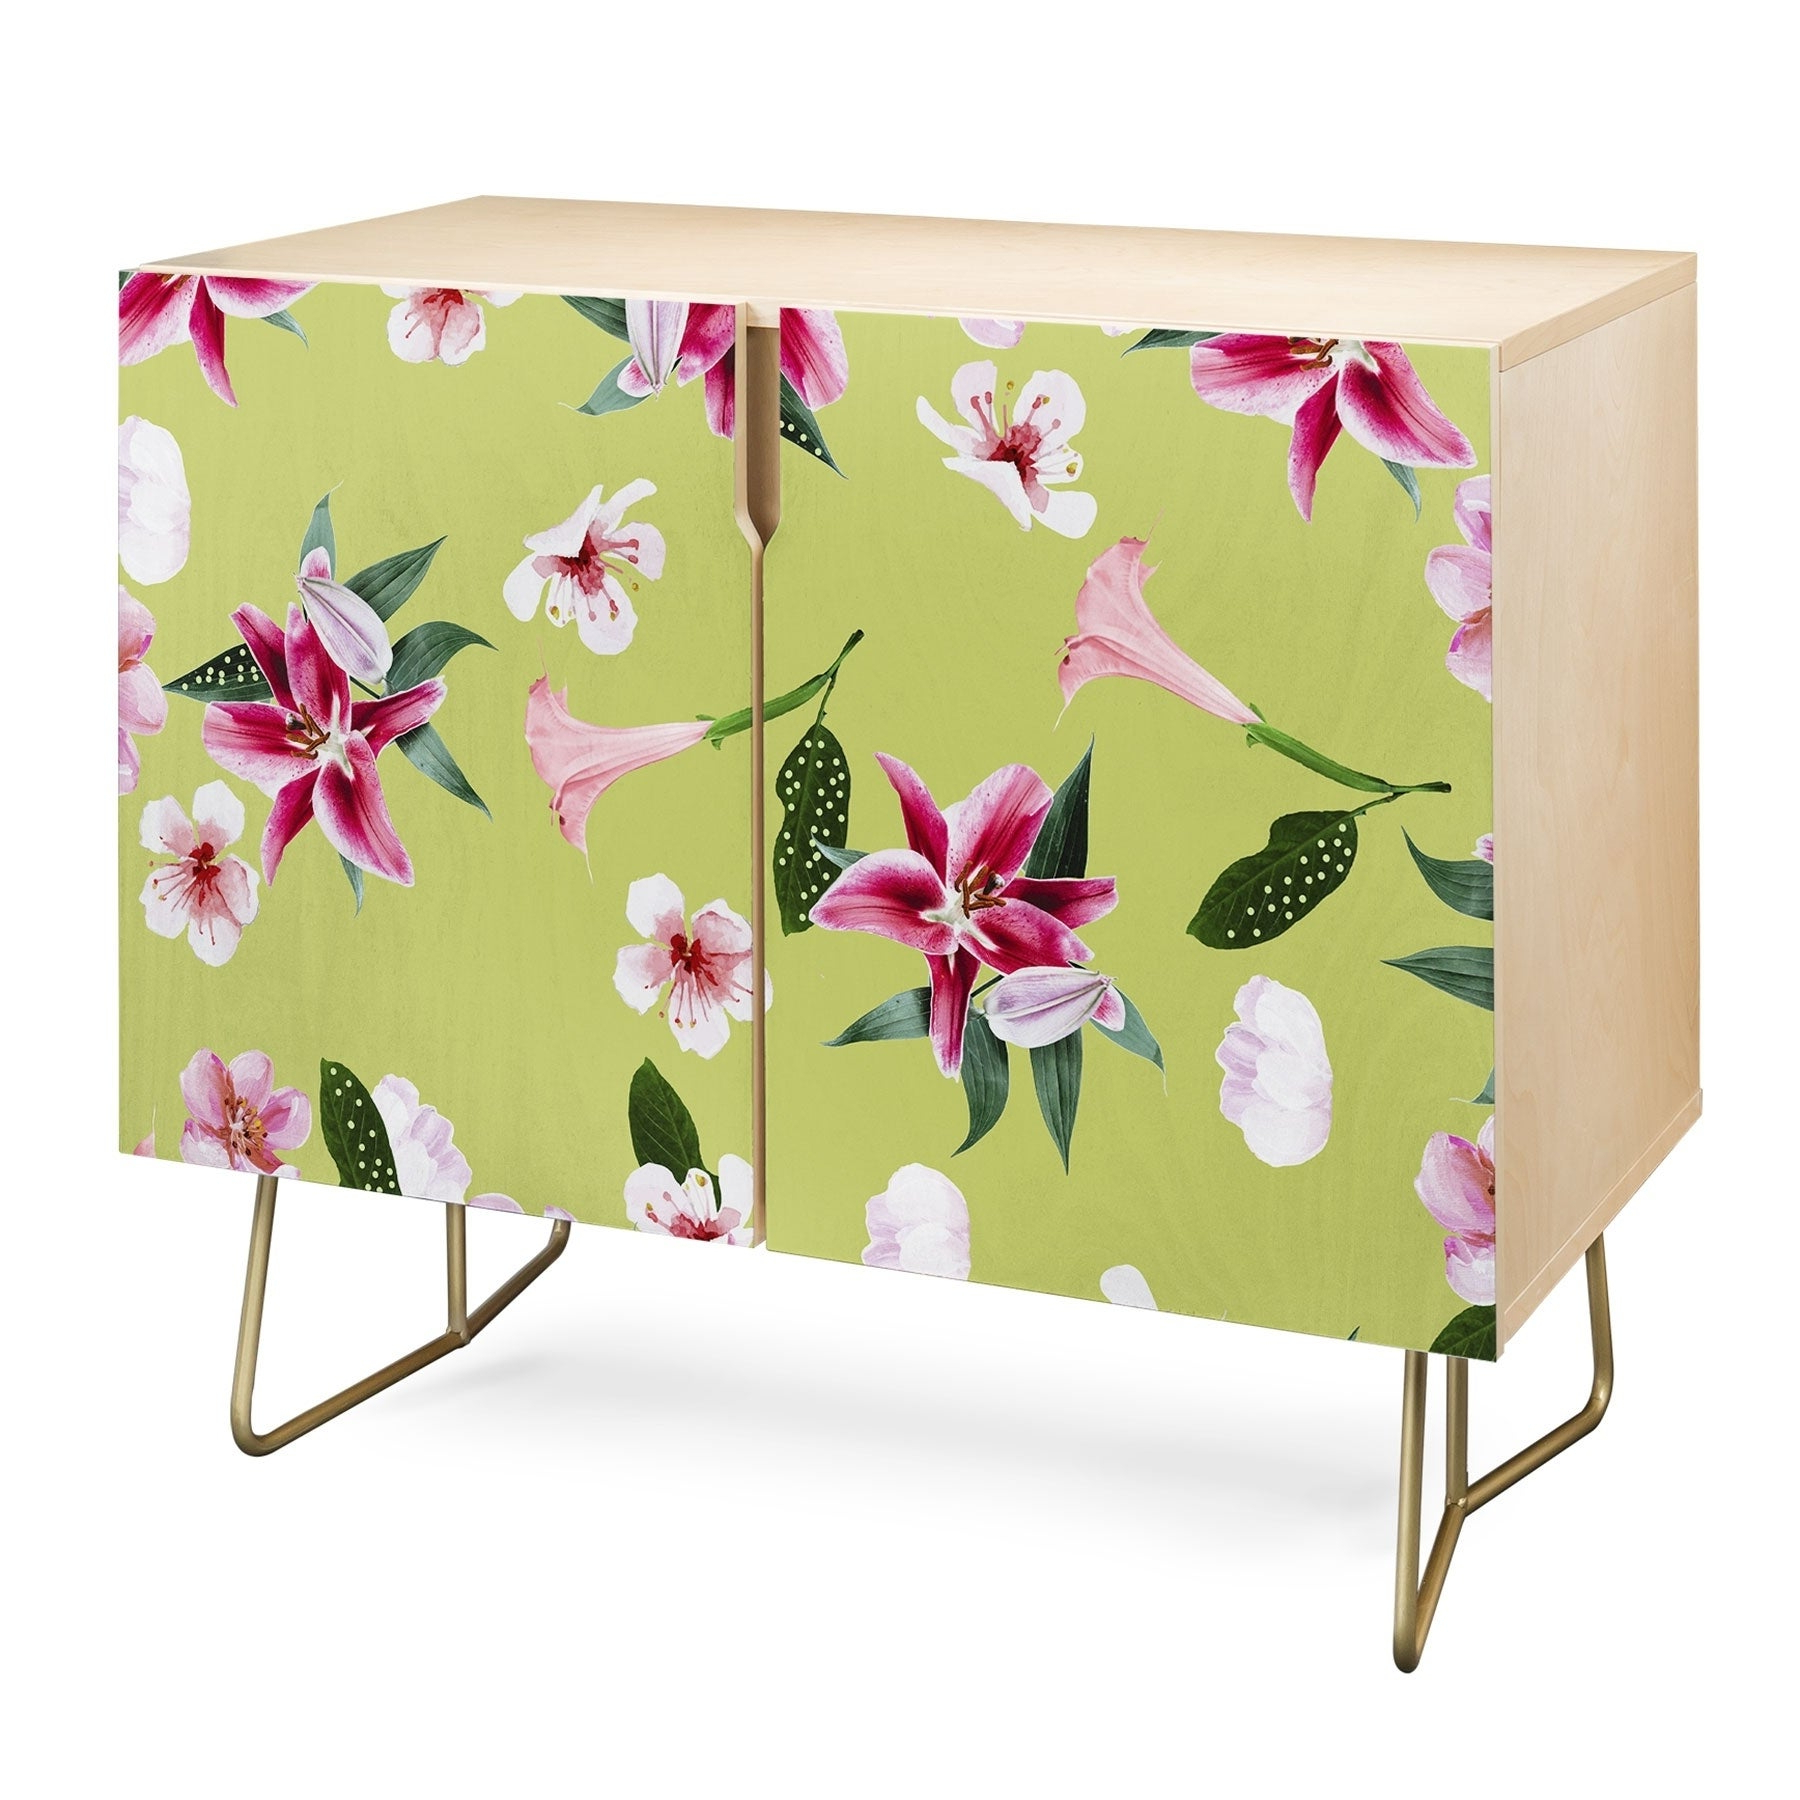 Deny Designs Oenomel Credenza (birch Or Walnut, 2 Leg Options) Within Oenomel Credenzas (View 6 of 20)